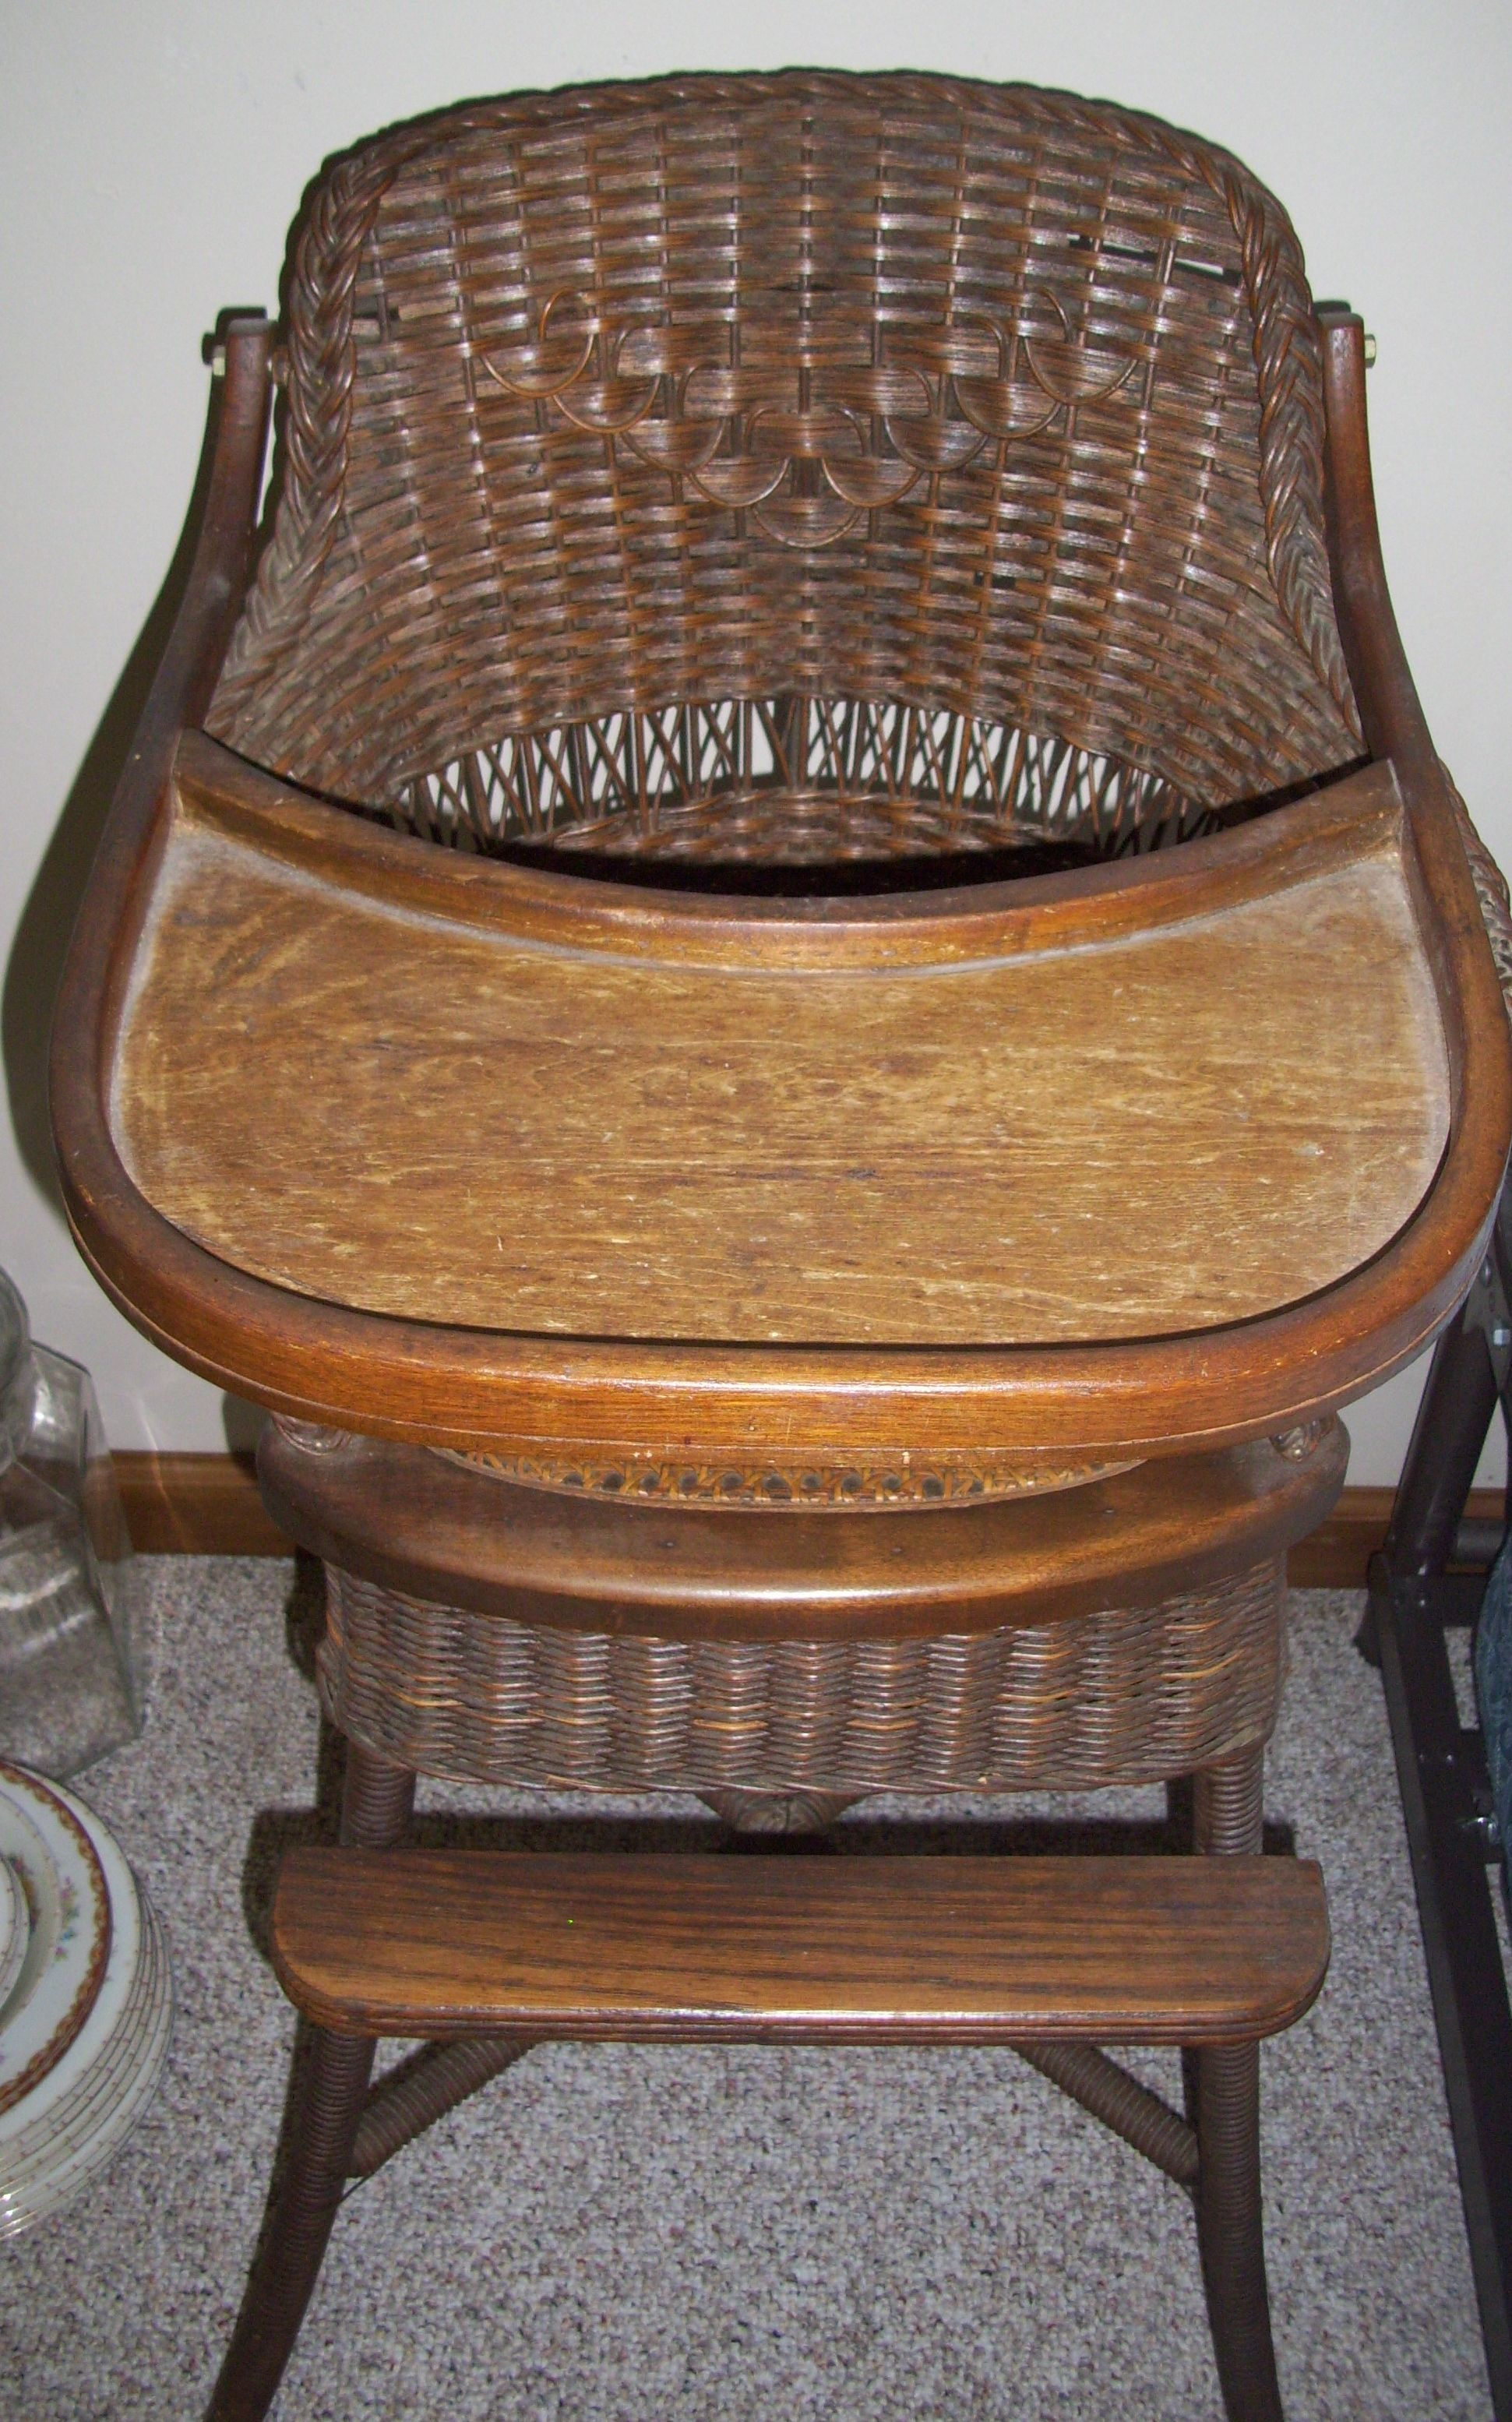 Antique Wicker High Chair | Things I LOVE! | Pinterest | High chairs ...